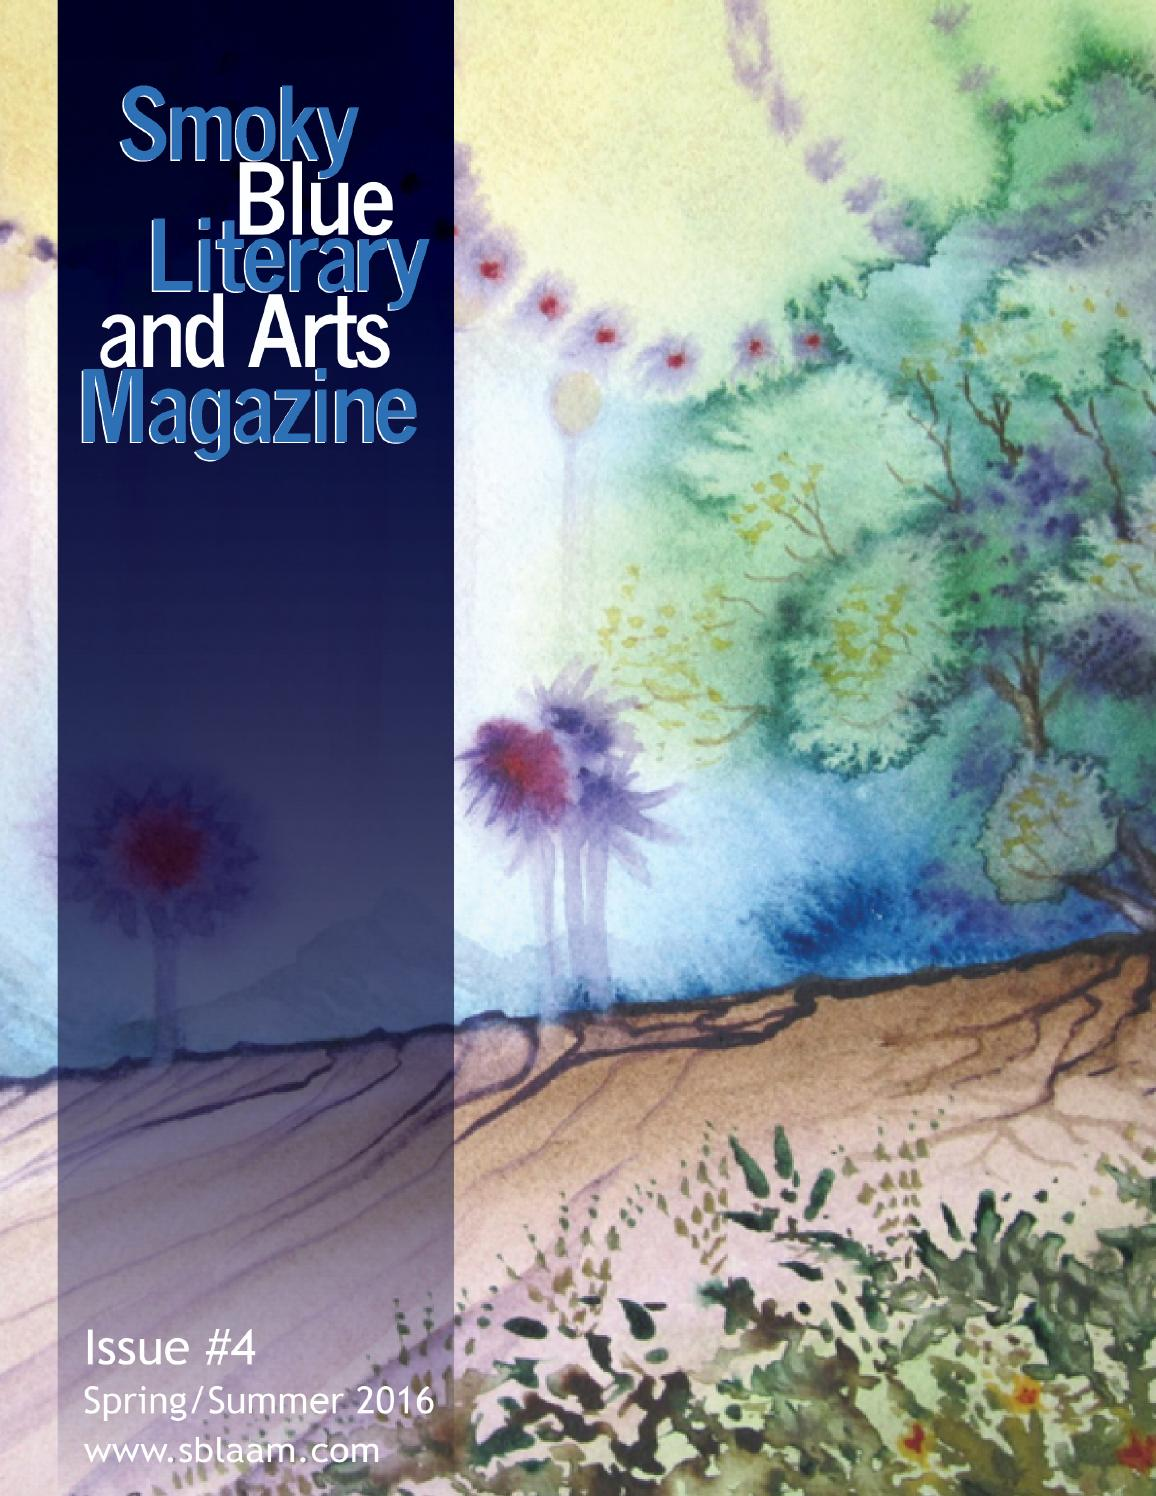 Smoky Blue Literary and Arts Magazine #4 by Smoky Blue Literary and ...